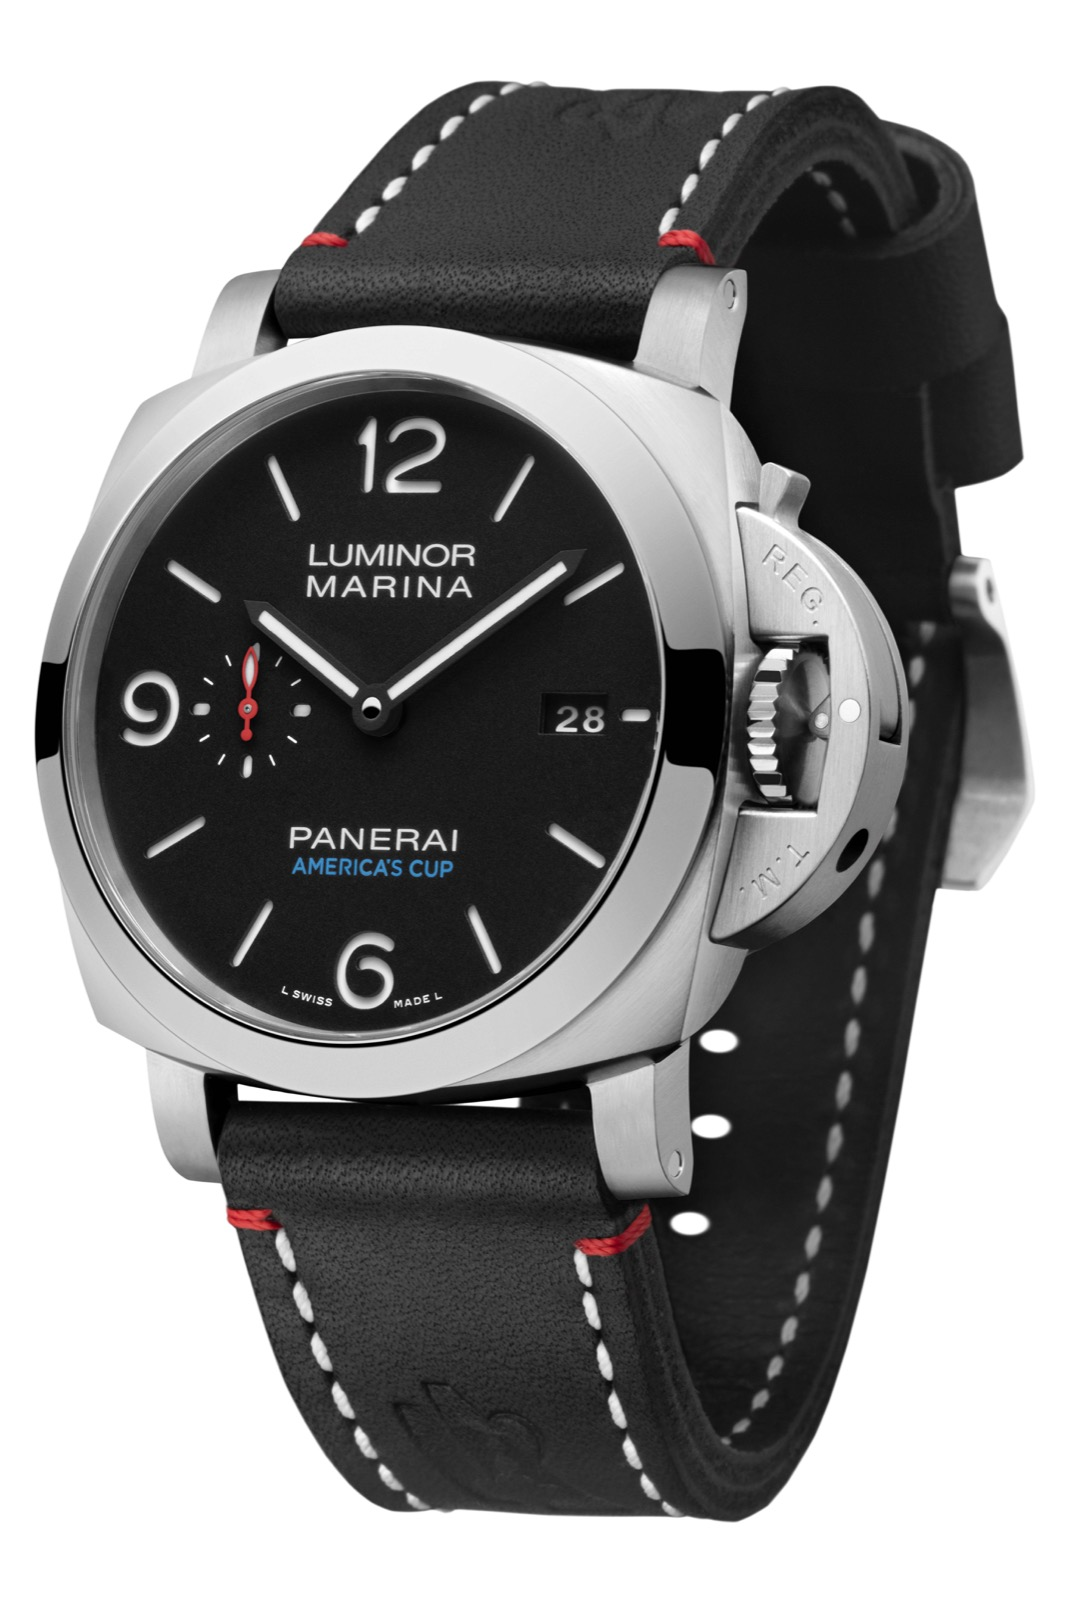 PANERAI LUMINOR MARINA 1950 SOFTBANK TEAM JAPAN 3 DAYS AUTOMATIC ACCIAIO (PAM732) – 44mm